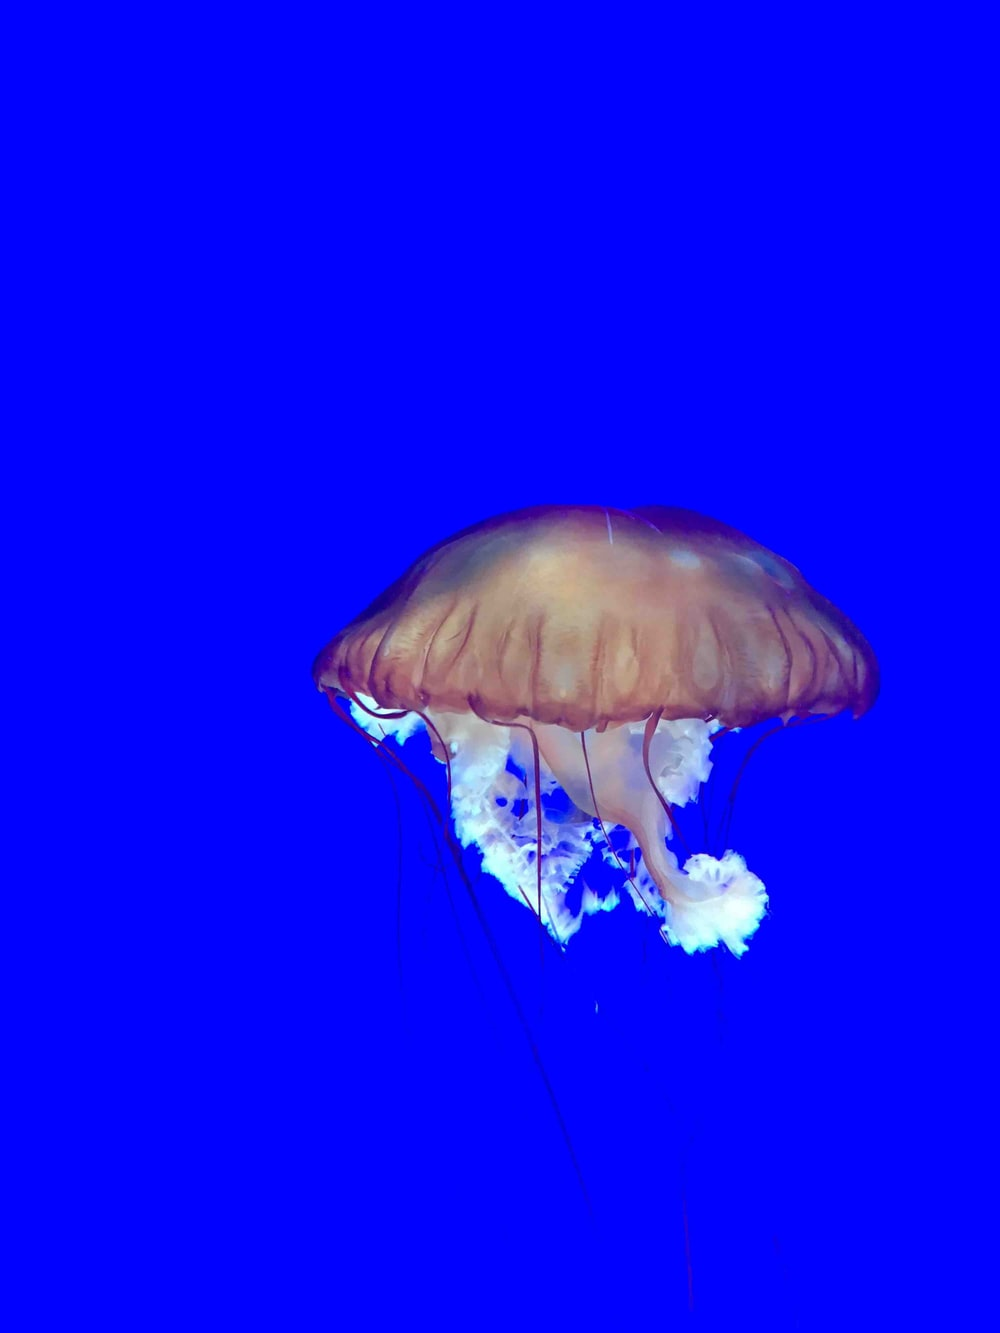 blue and white jellyfish in blue water